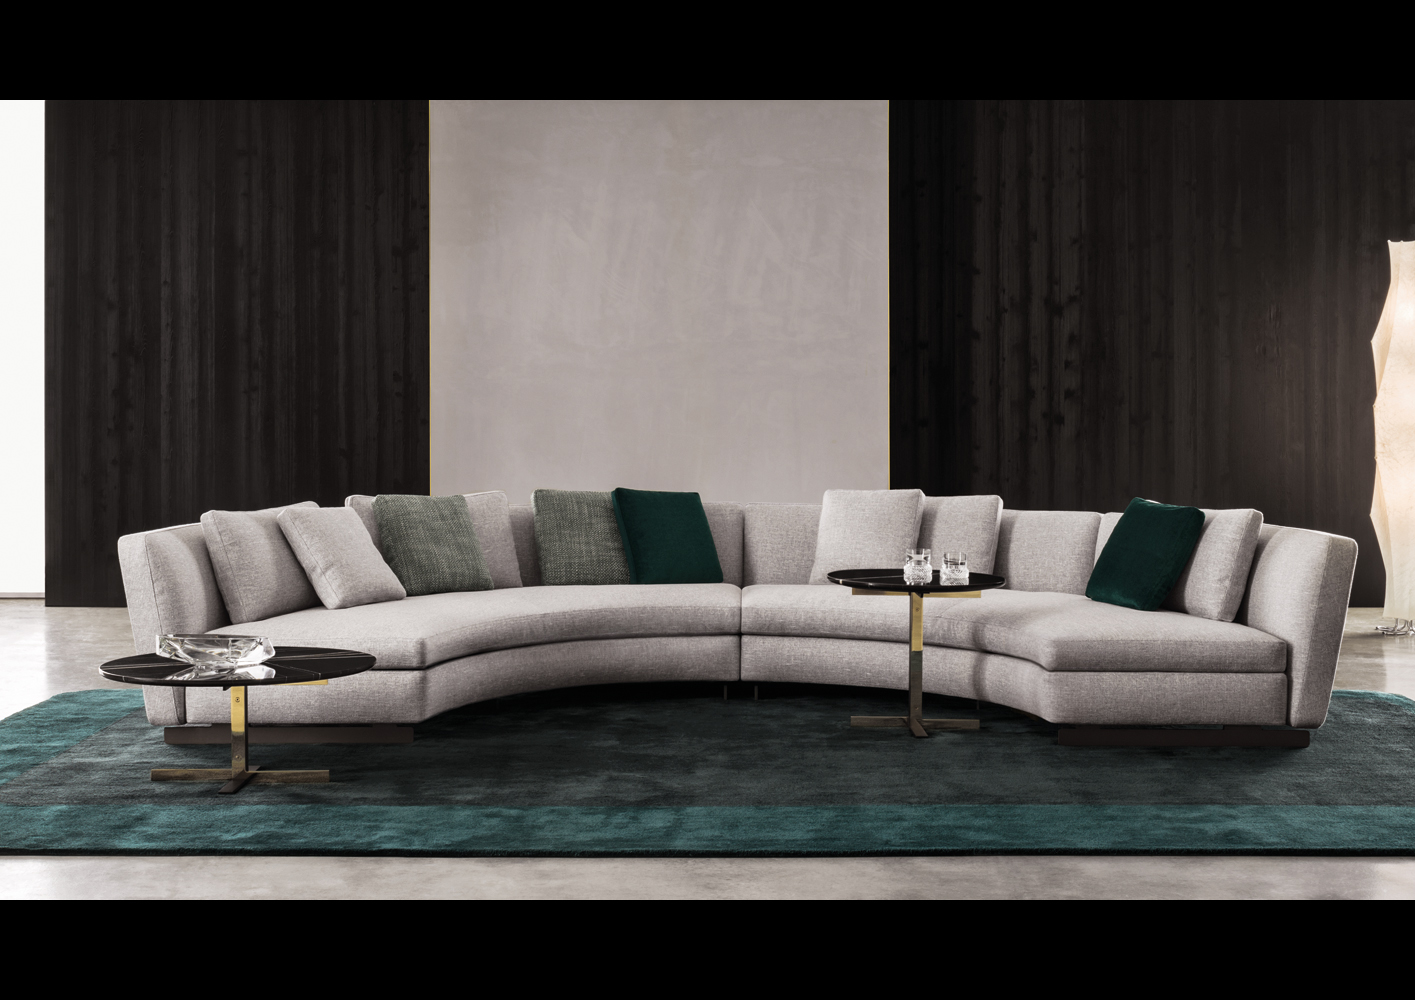 seymour sofa designed by rodolfo dordoni minotti orange skin. Black Bedroom Furniture Sets. Home Design Ideas